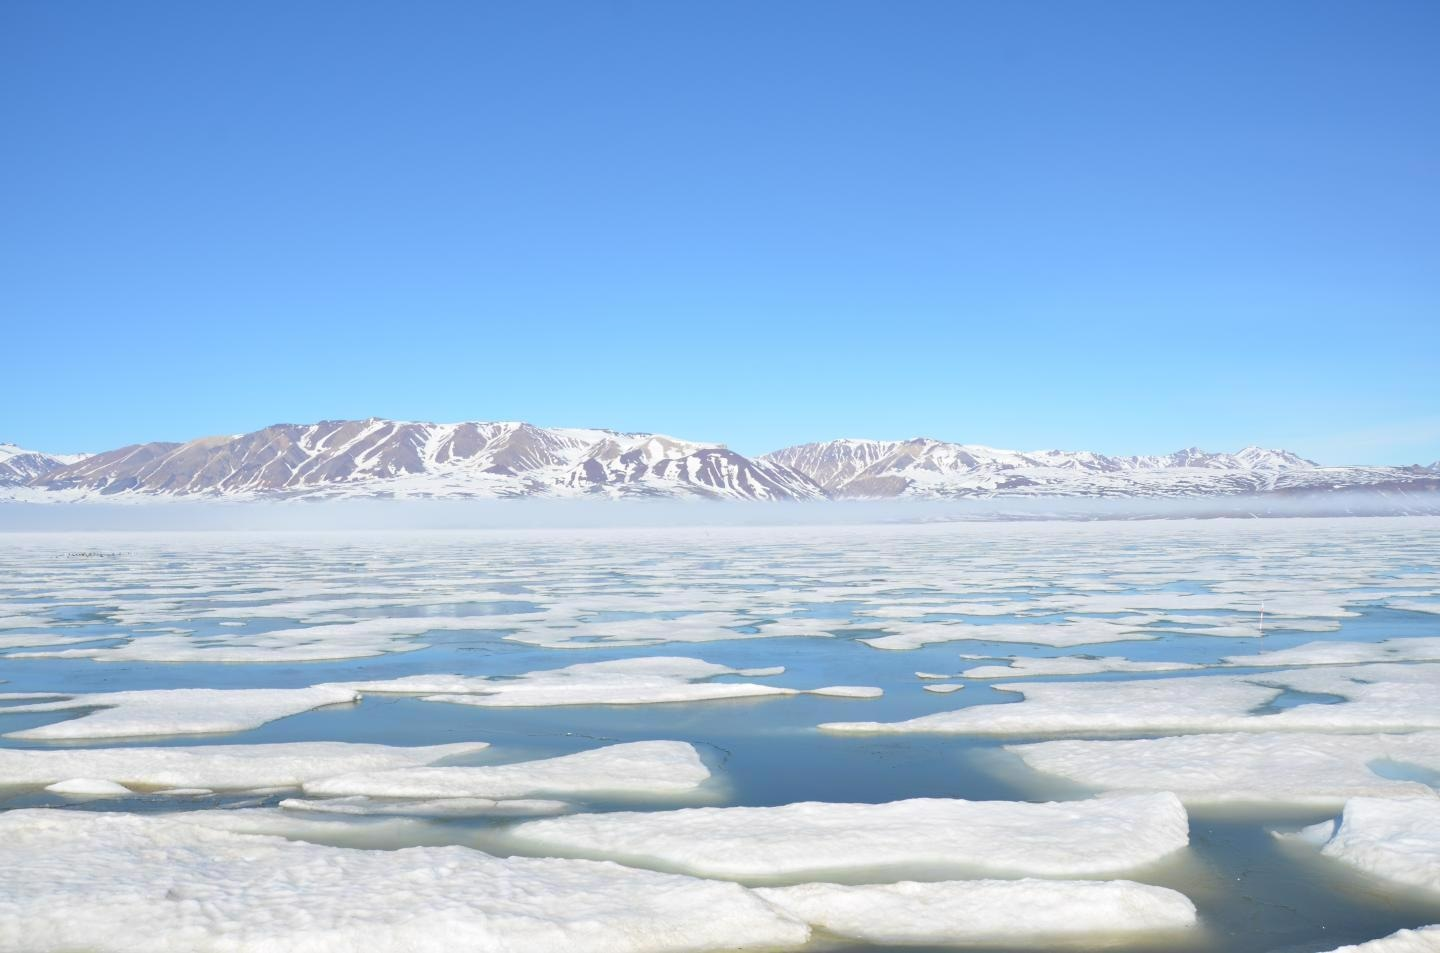 Future Ice Thinning in the Arctic Could Mean More Toxic Plankton Algae